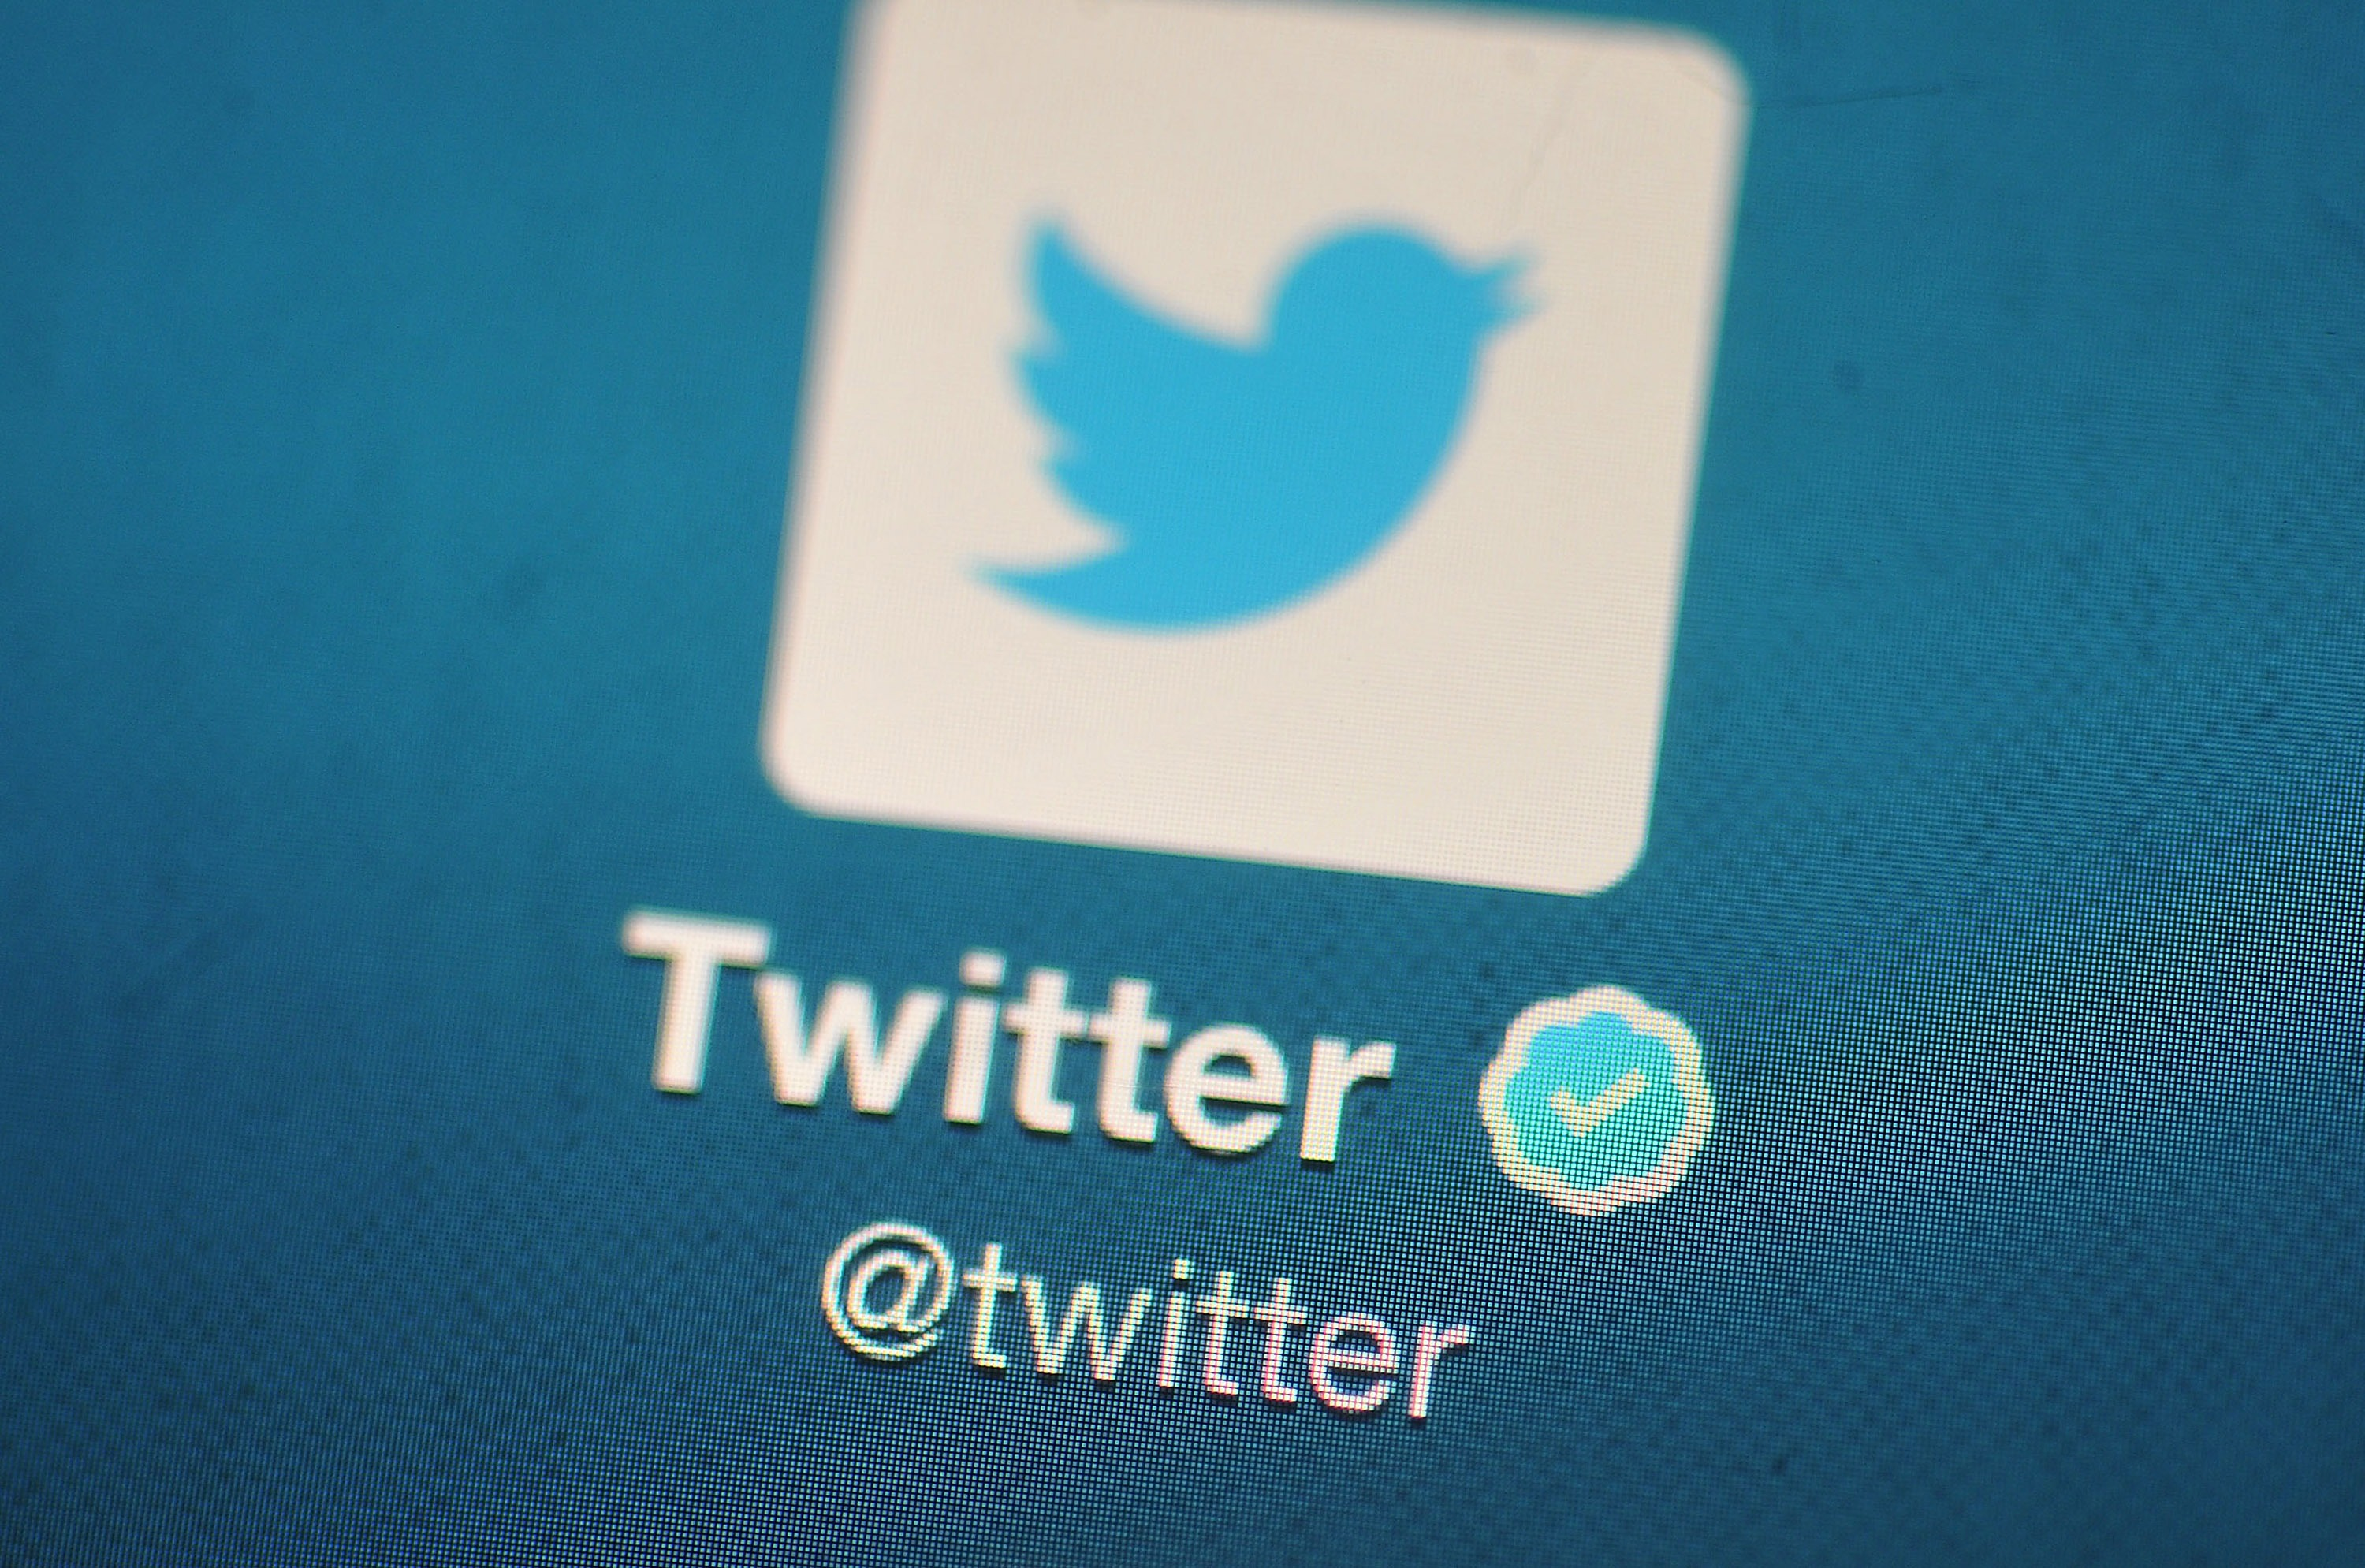 The Twitter logo on a mobile device as the company announced it's initial public offering and debut on the New York Stock Exchange in London, England on November 7, 2013